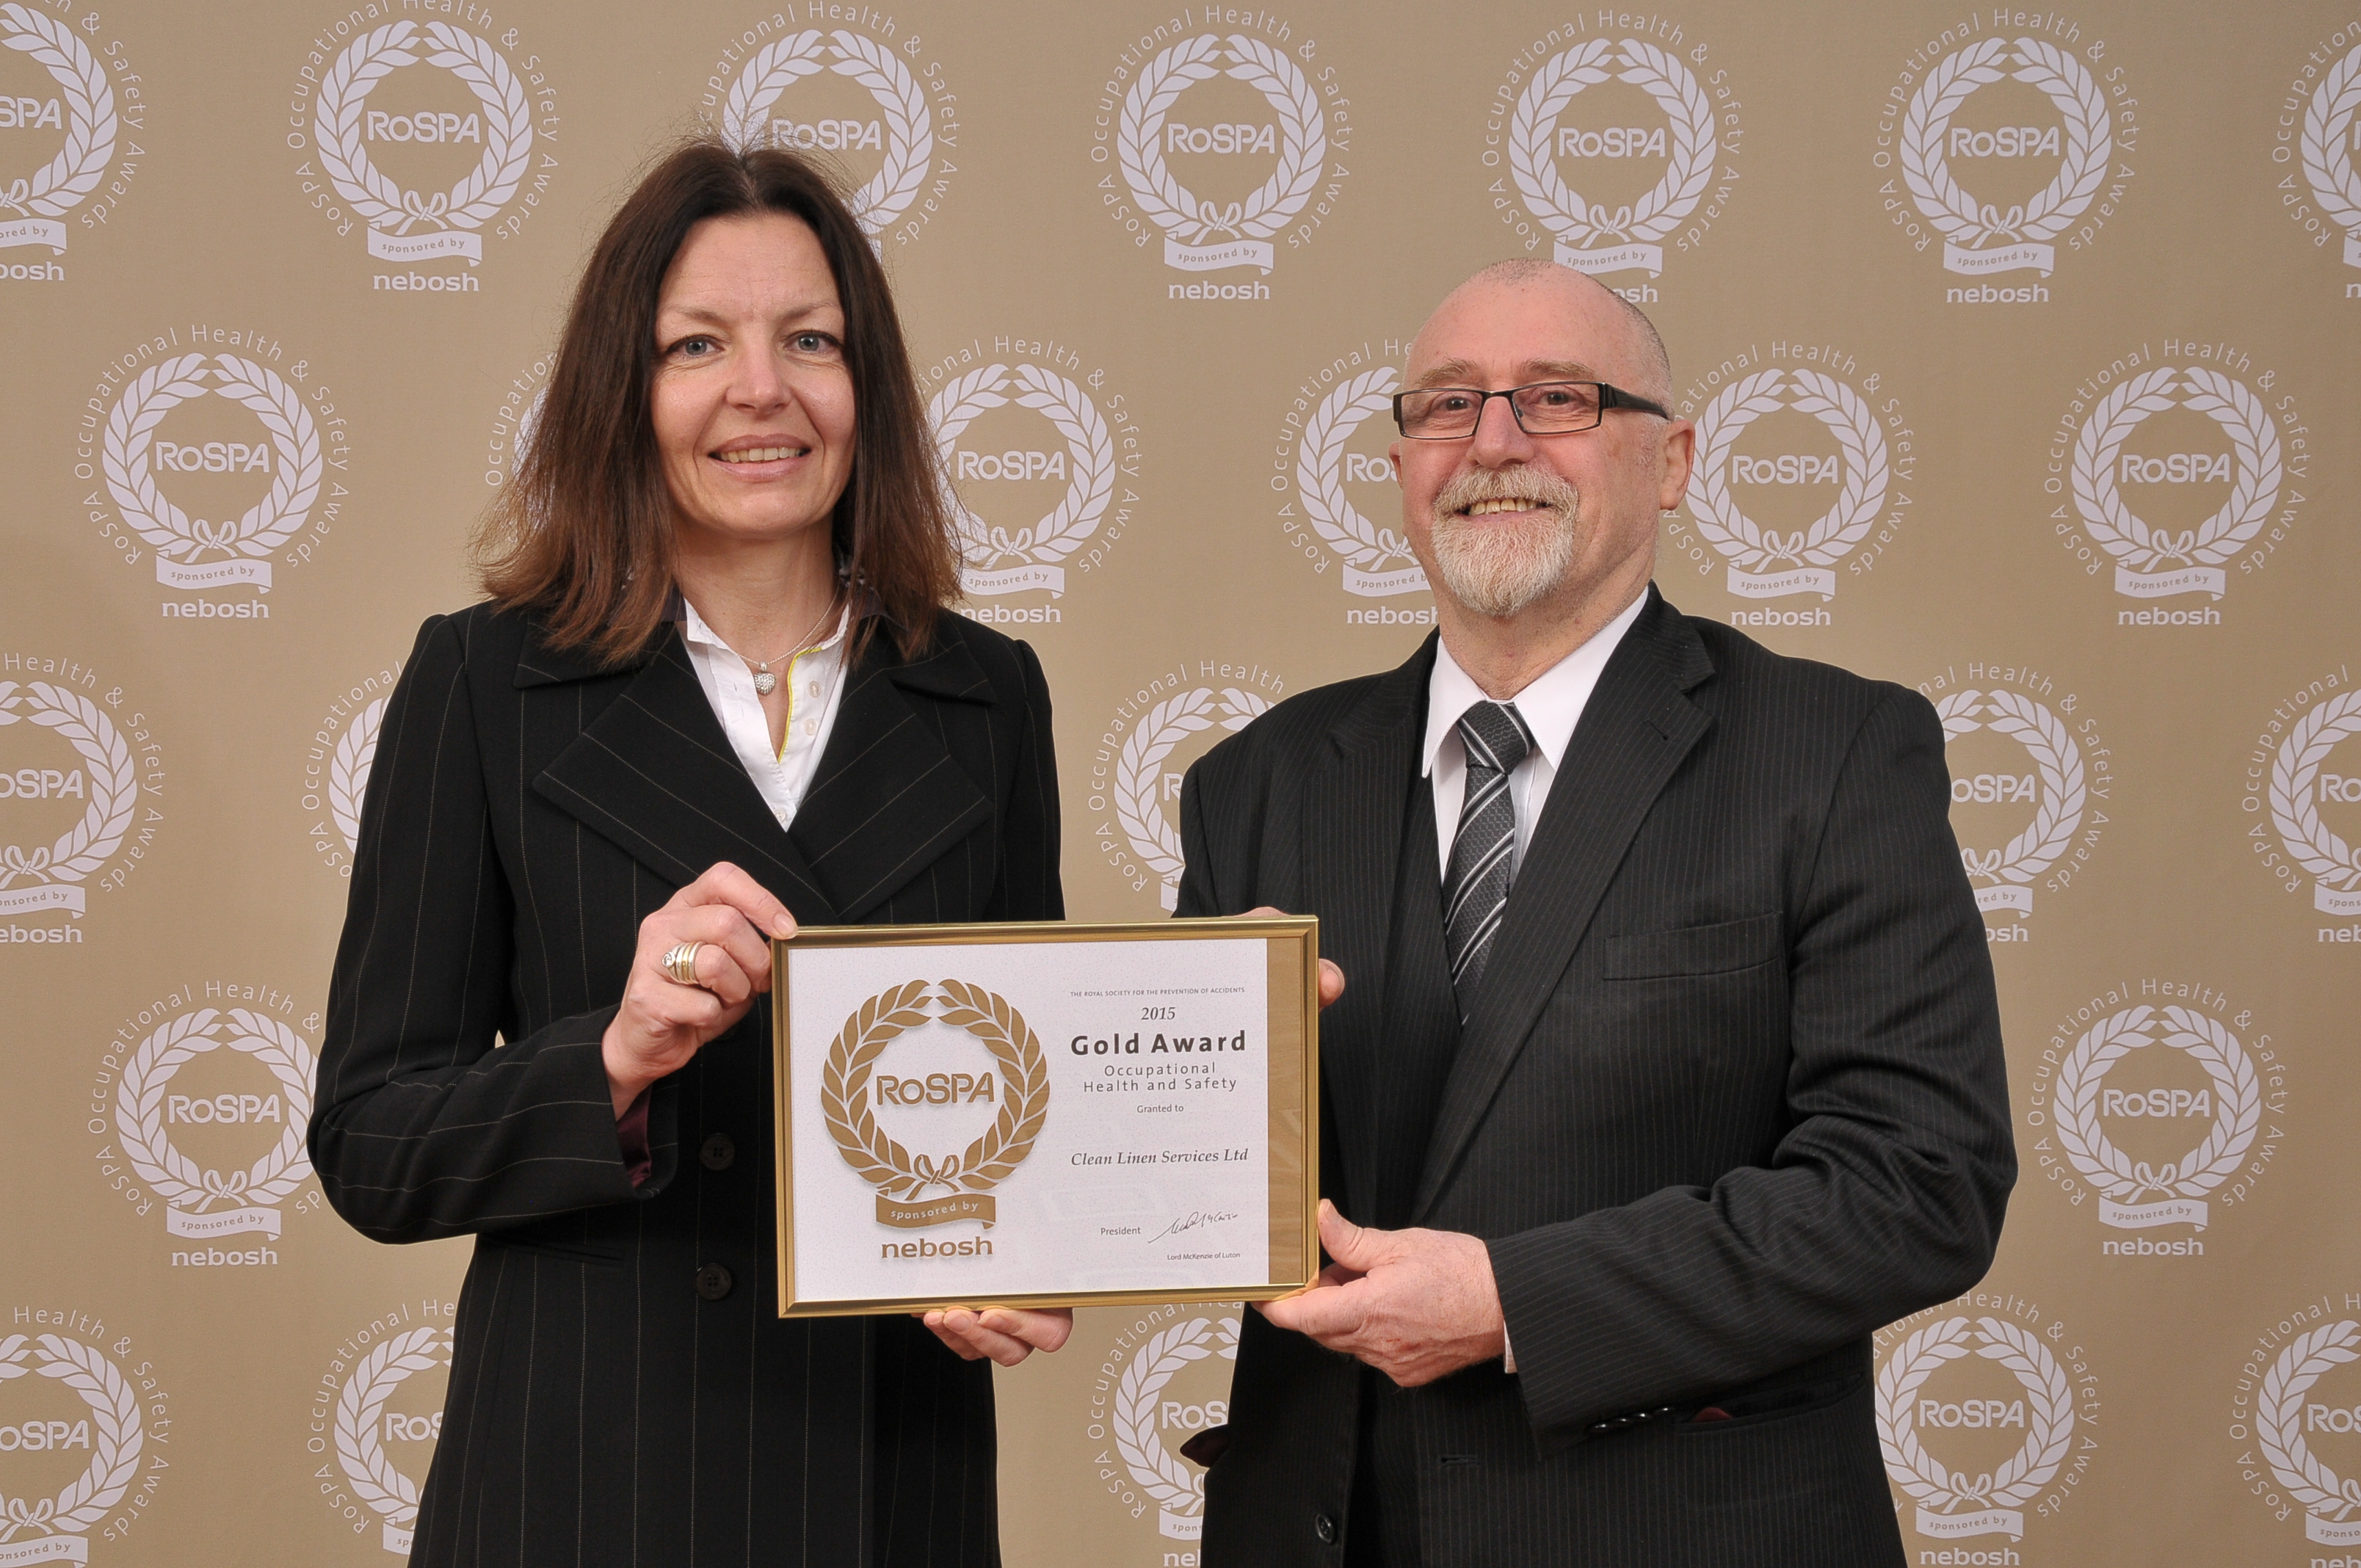 CLEAN are presented with our third consecutive RoSPA award - News - CLEAN Services